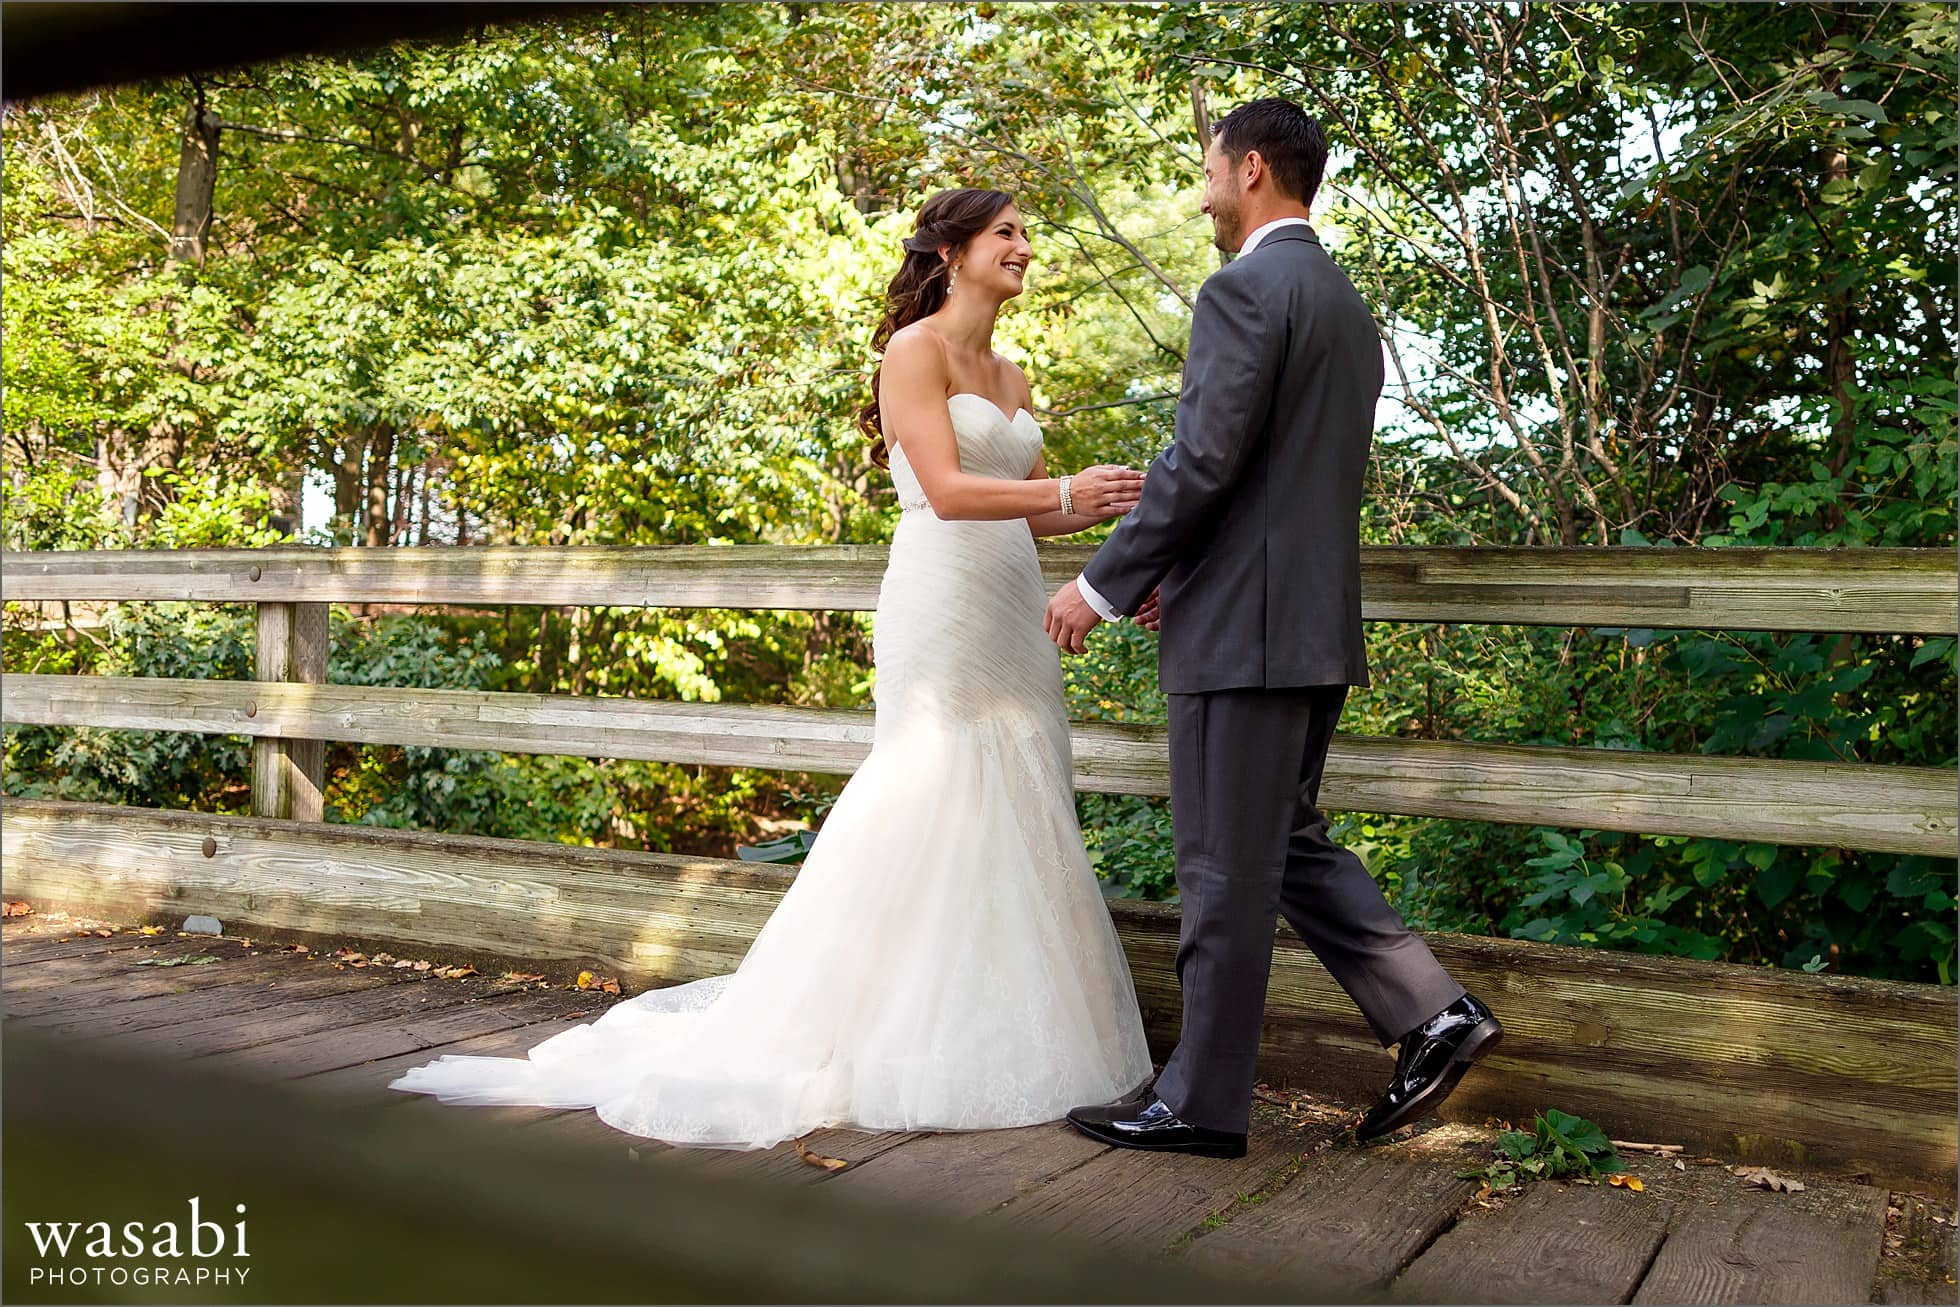 ivanhoe country club wedding first look photos